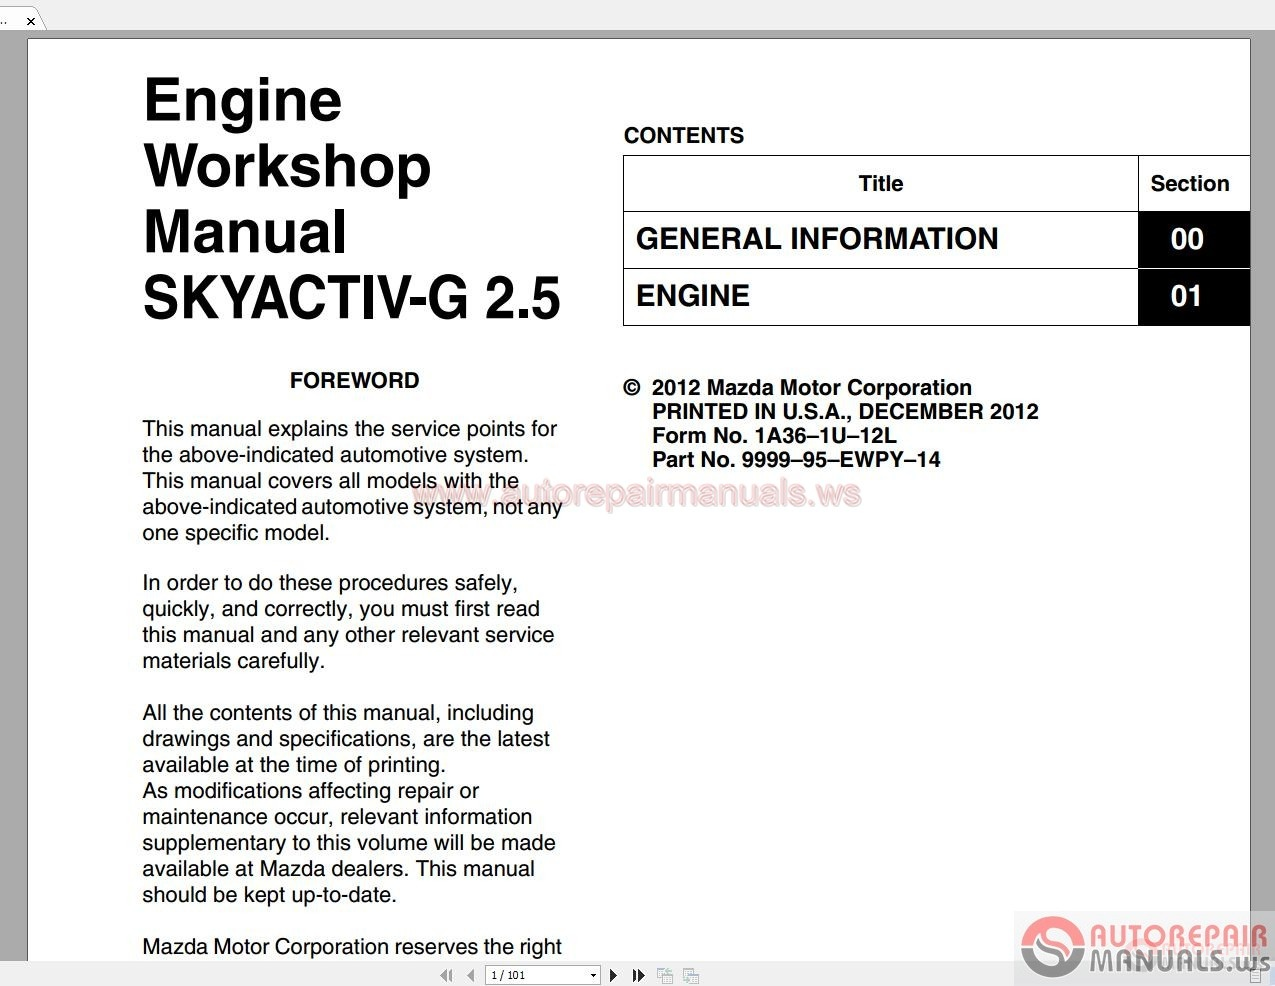 Mazda Engine Workshop Manual Skyactiv